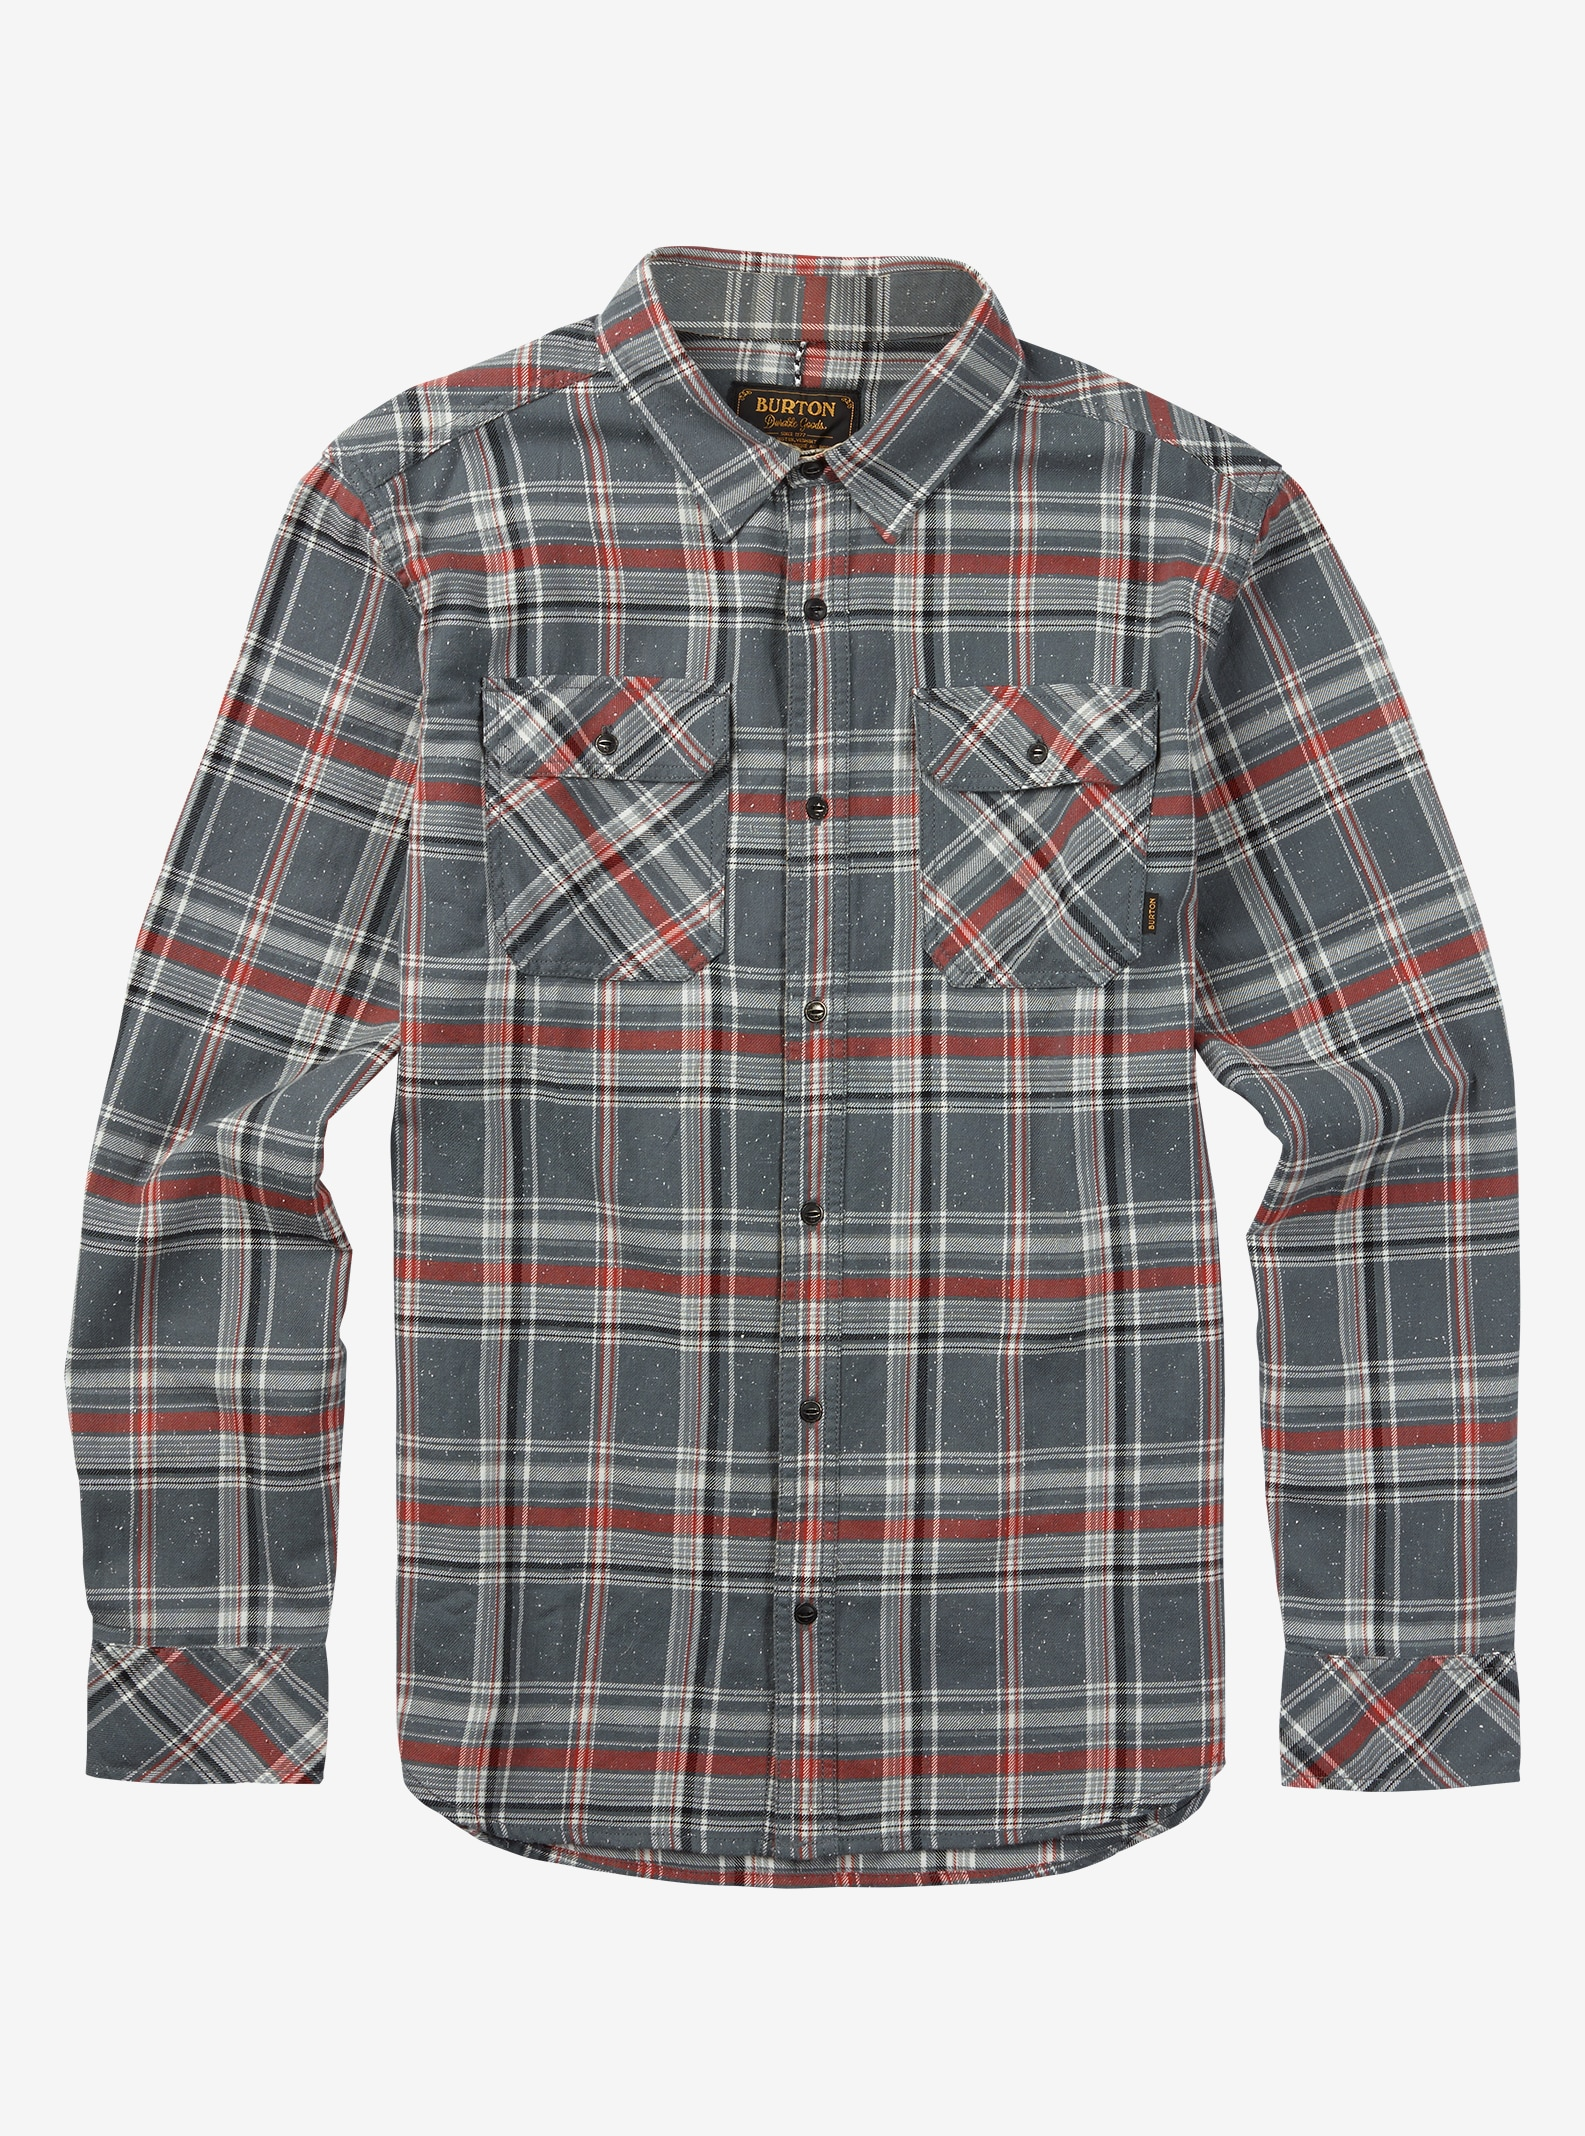 Burton Brighton Flannel shown in Monument Plaid